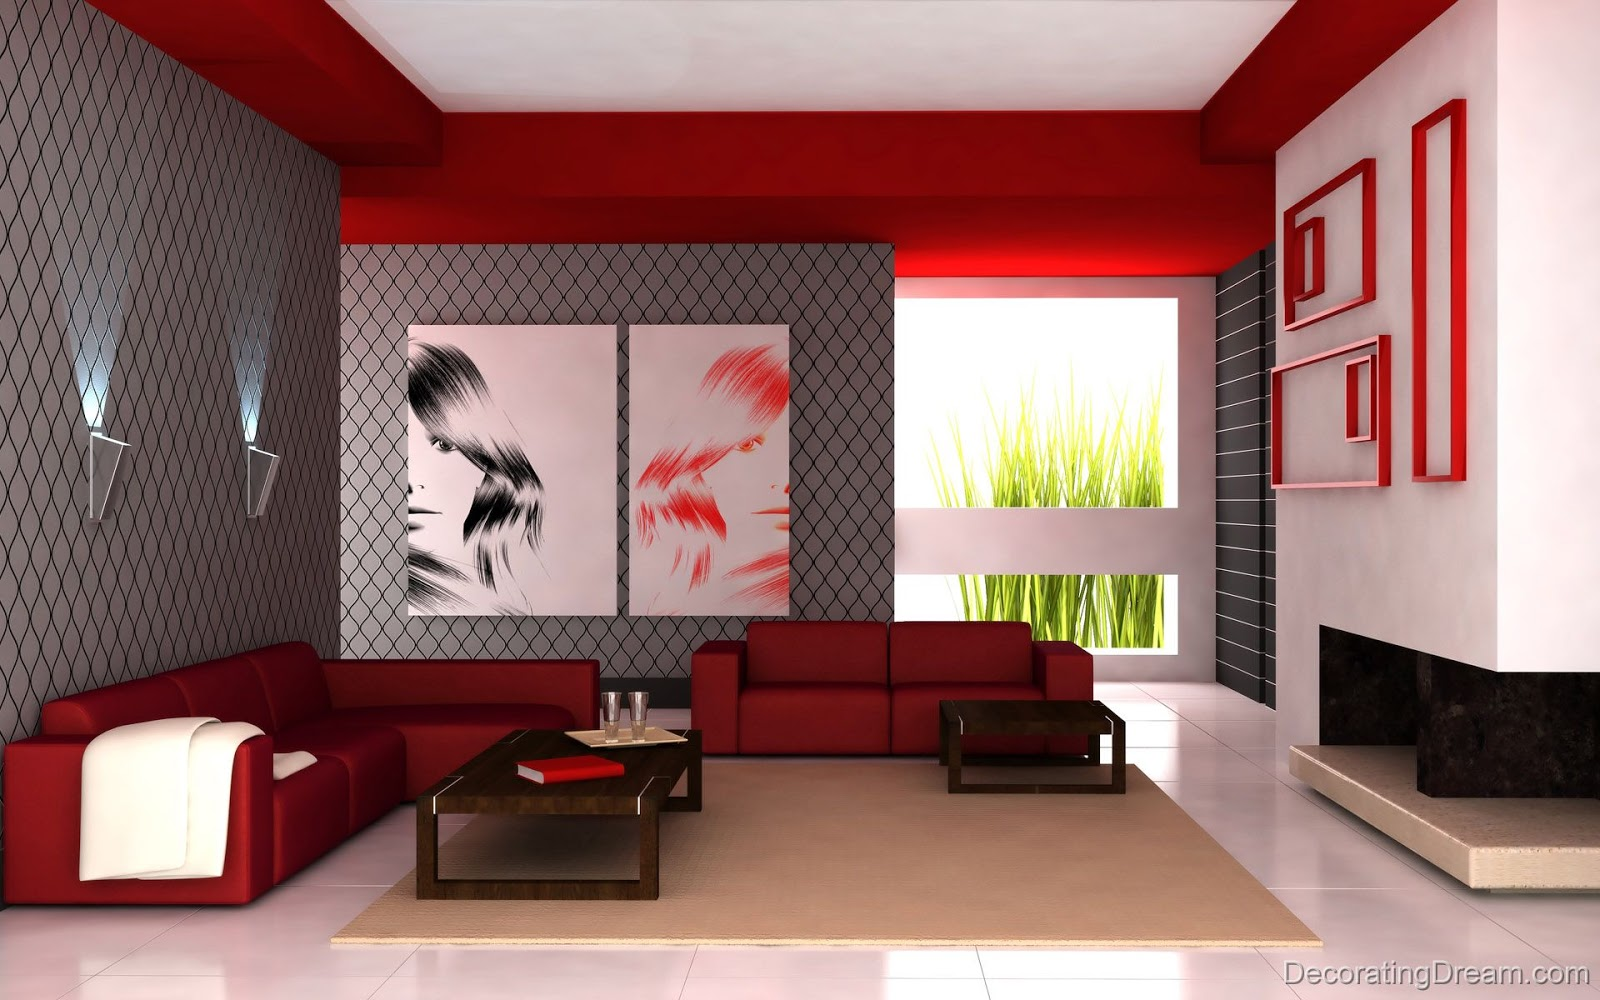 Choosing Colors And Finishes For Modern Living Room Walls Are A Matter Of Personal Taste Consideration Existing Decor Such As The Floor